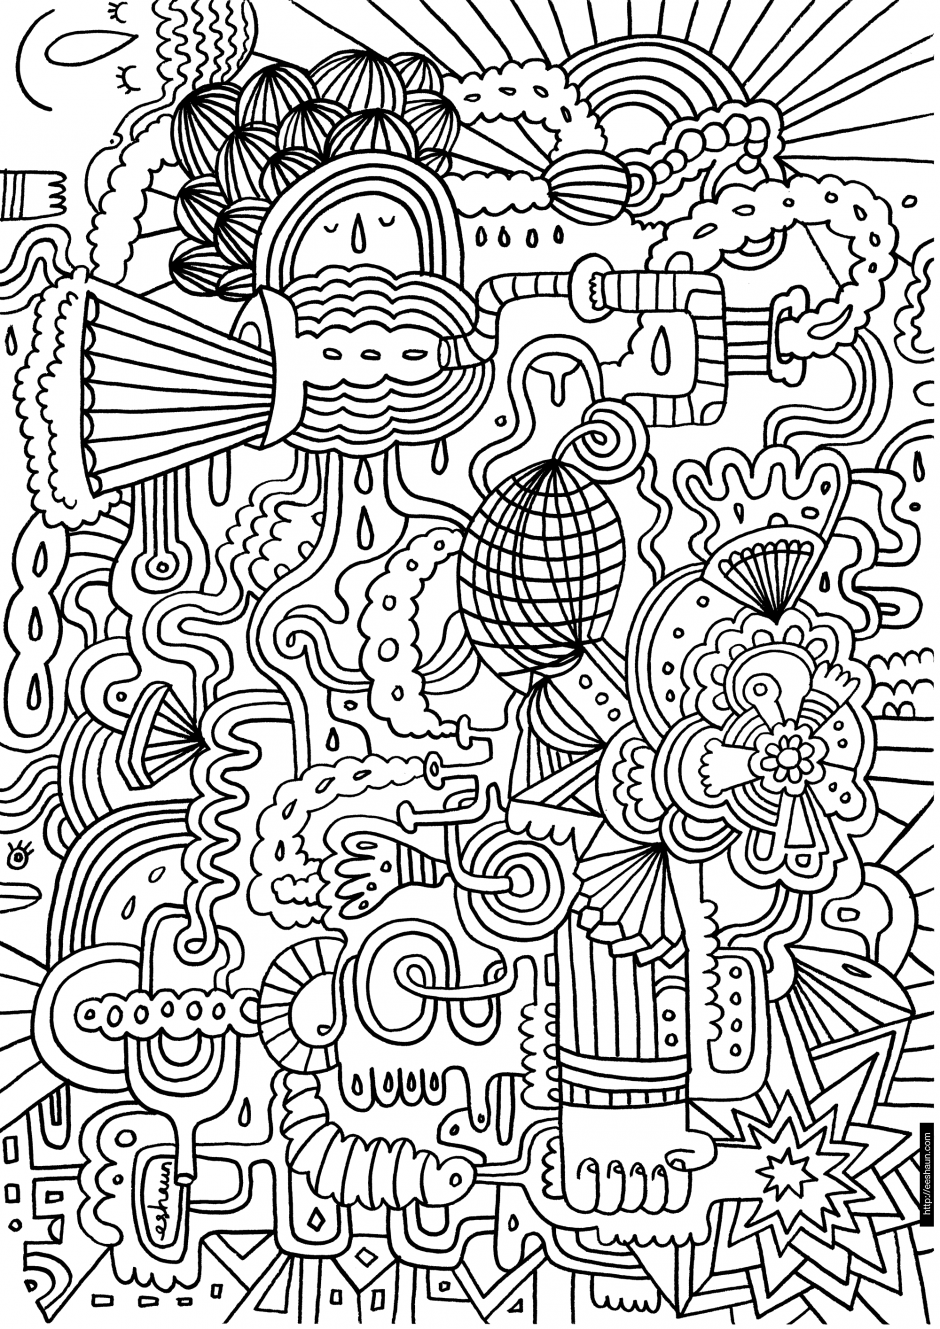 difficult coloring pages for teenagers printable difficult coloring pages coloring home difficult coloring for pages teenagers